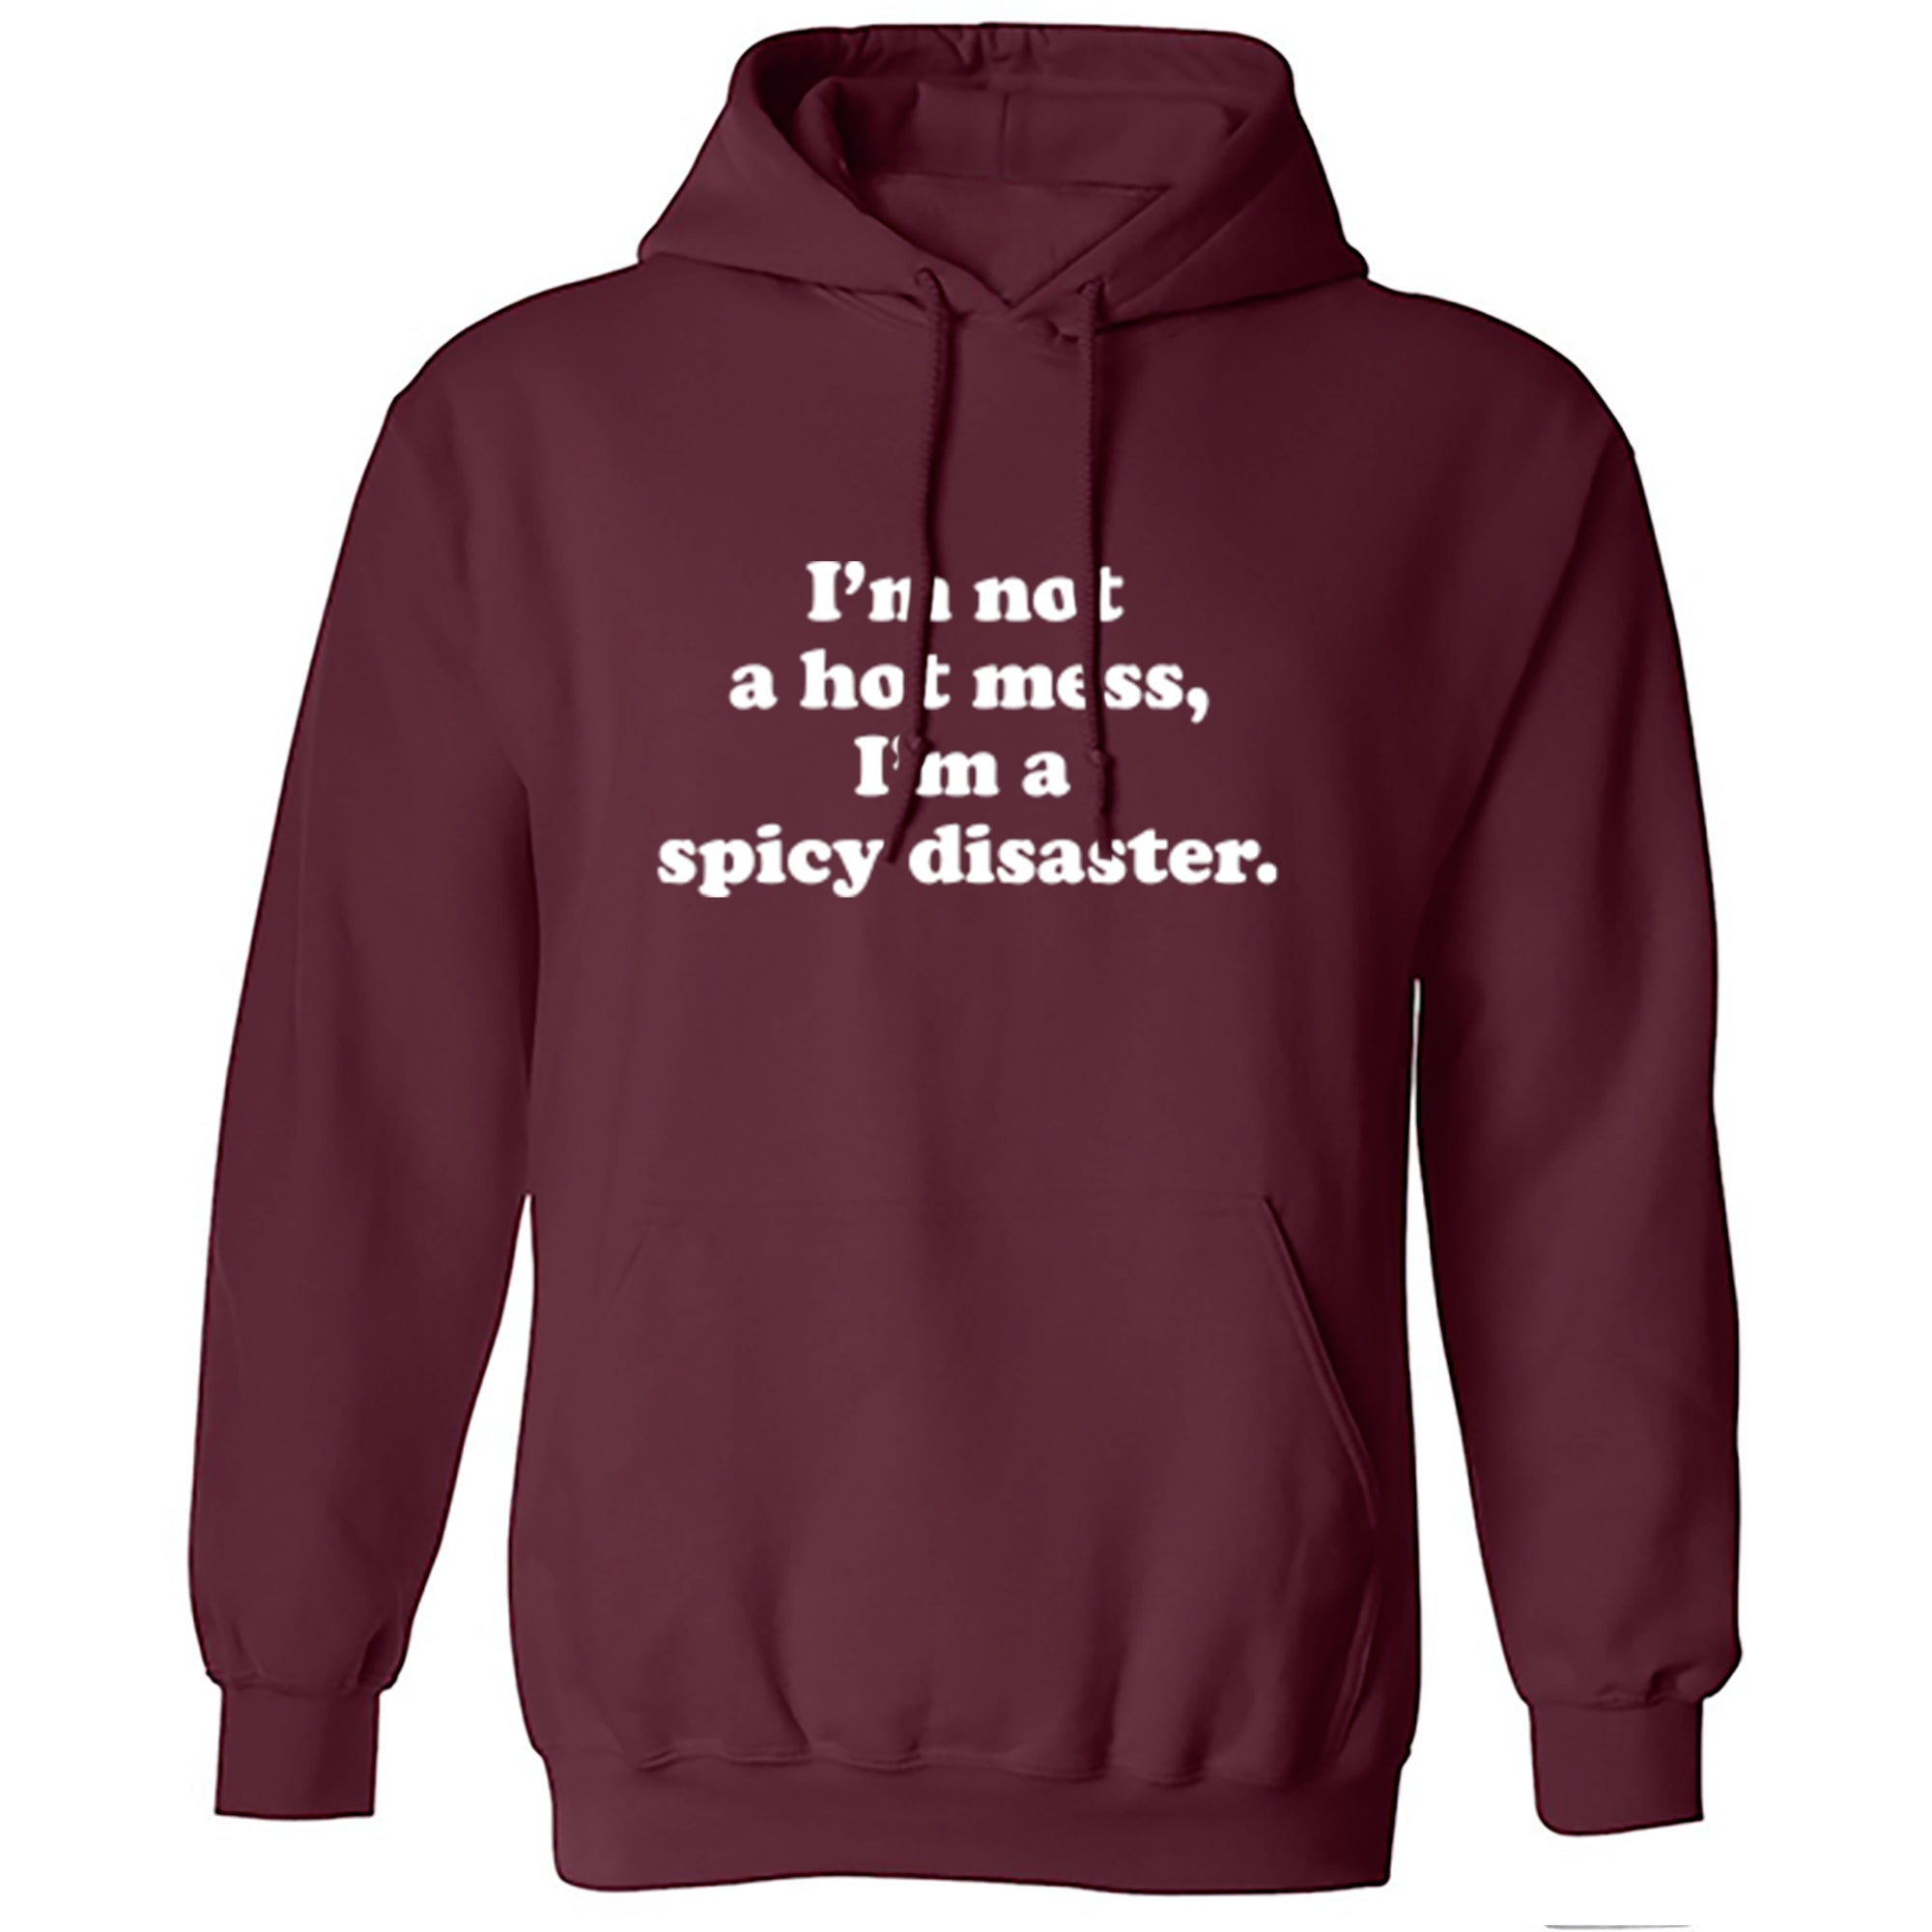 I'm Not A Hot Mess, I'm A Spicy Disaster Unisex Hoodie S0913 - Illustrated Identity Ltd.